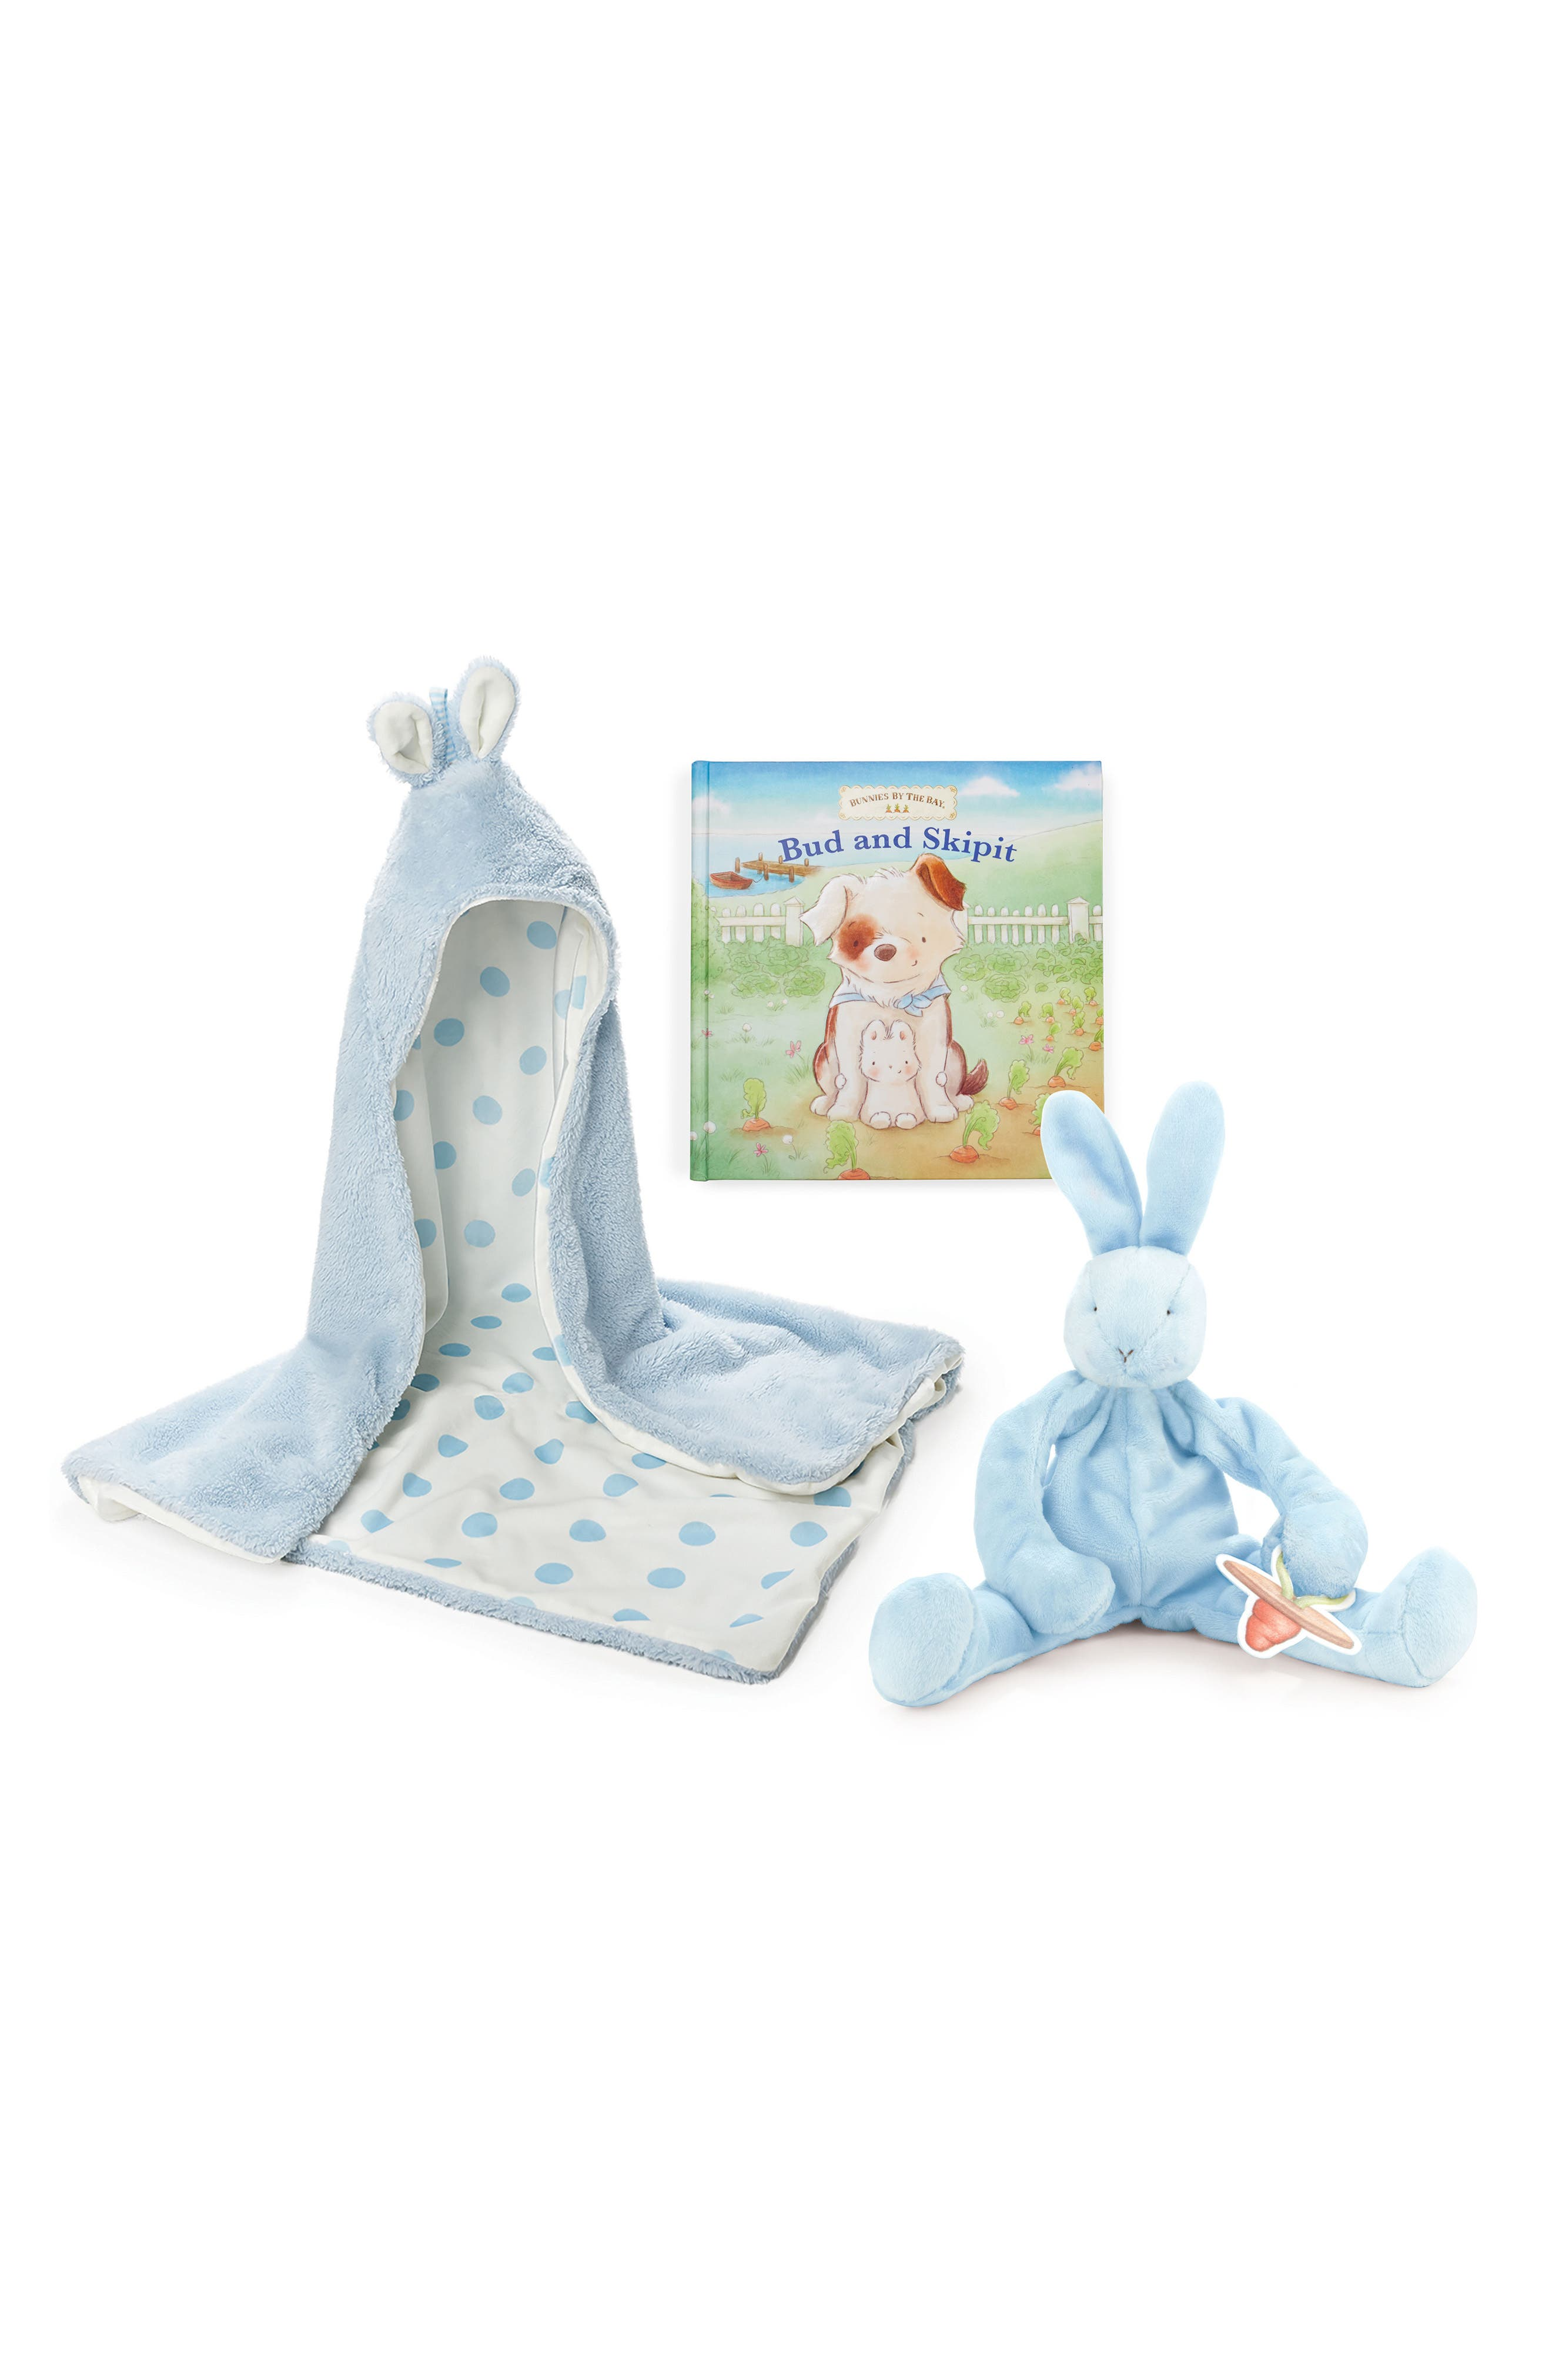 Bunnies by the Bay Hooded Blanket, Stuffed Animal & Board Book Set